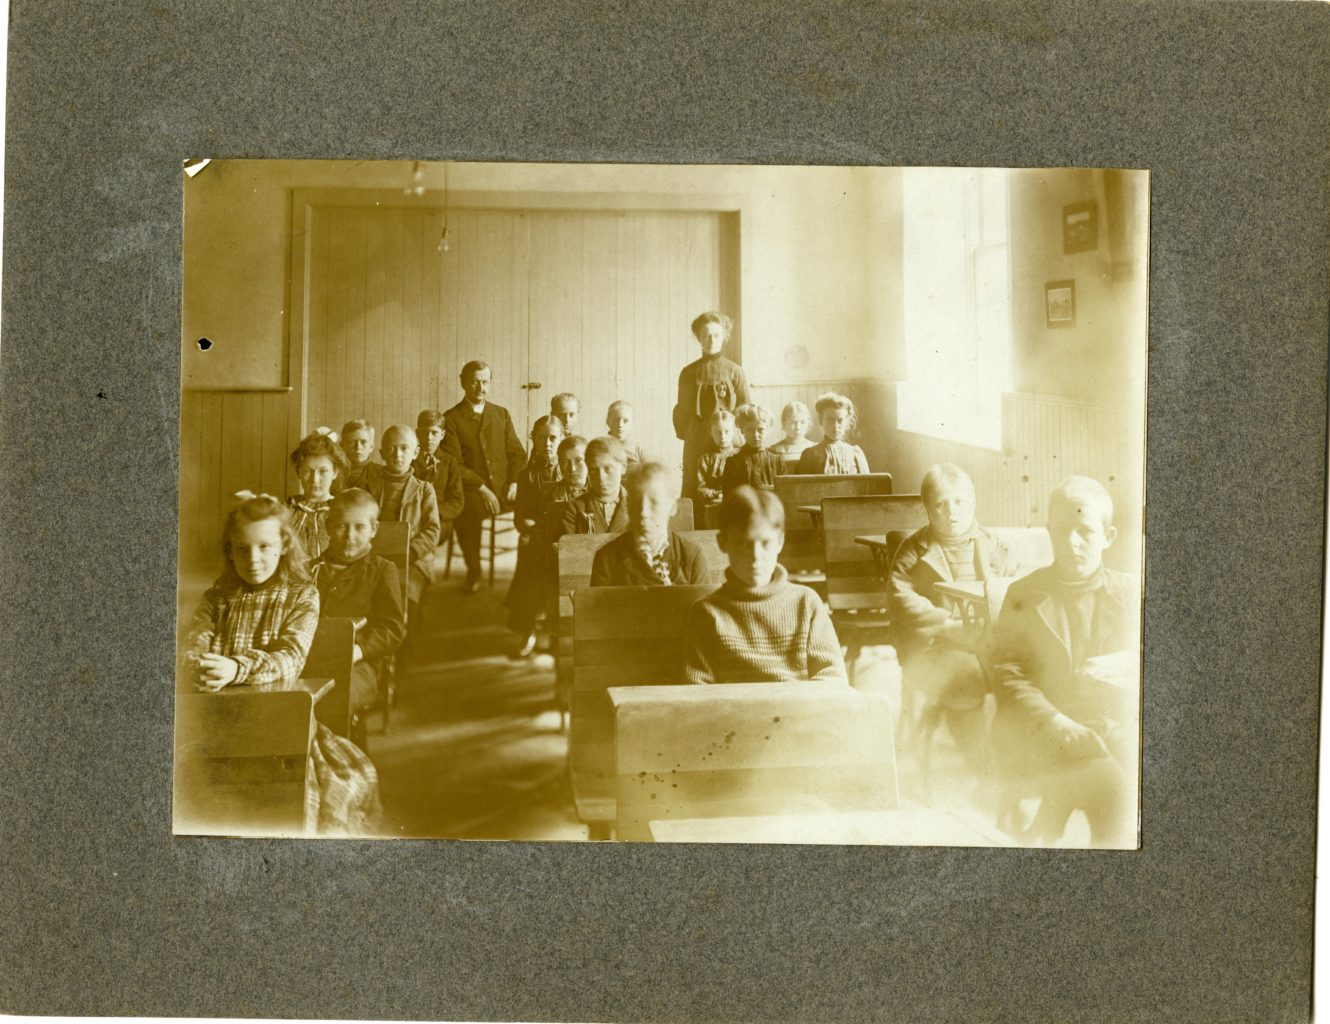 Eighteen children and three adults in a classroom.